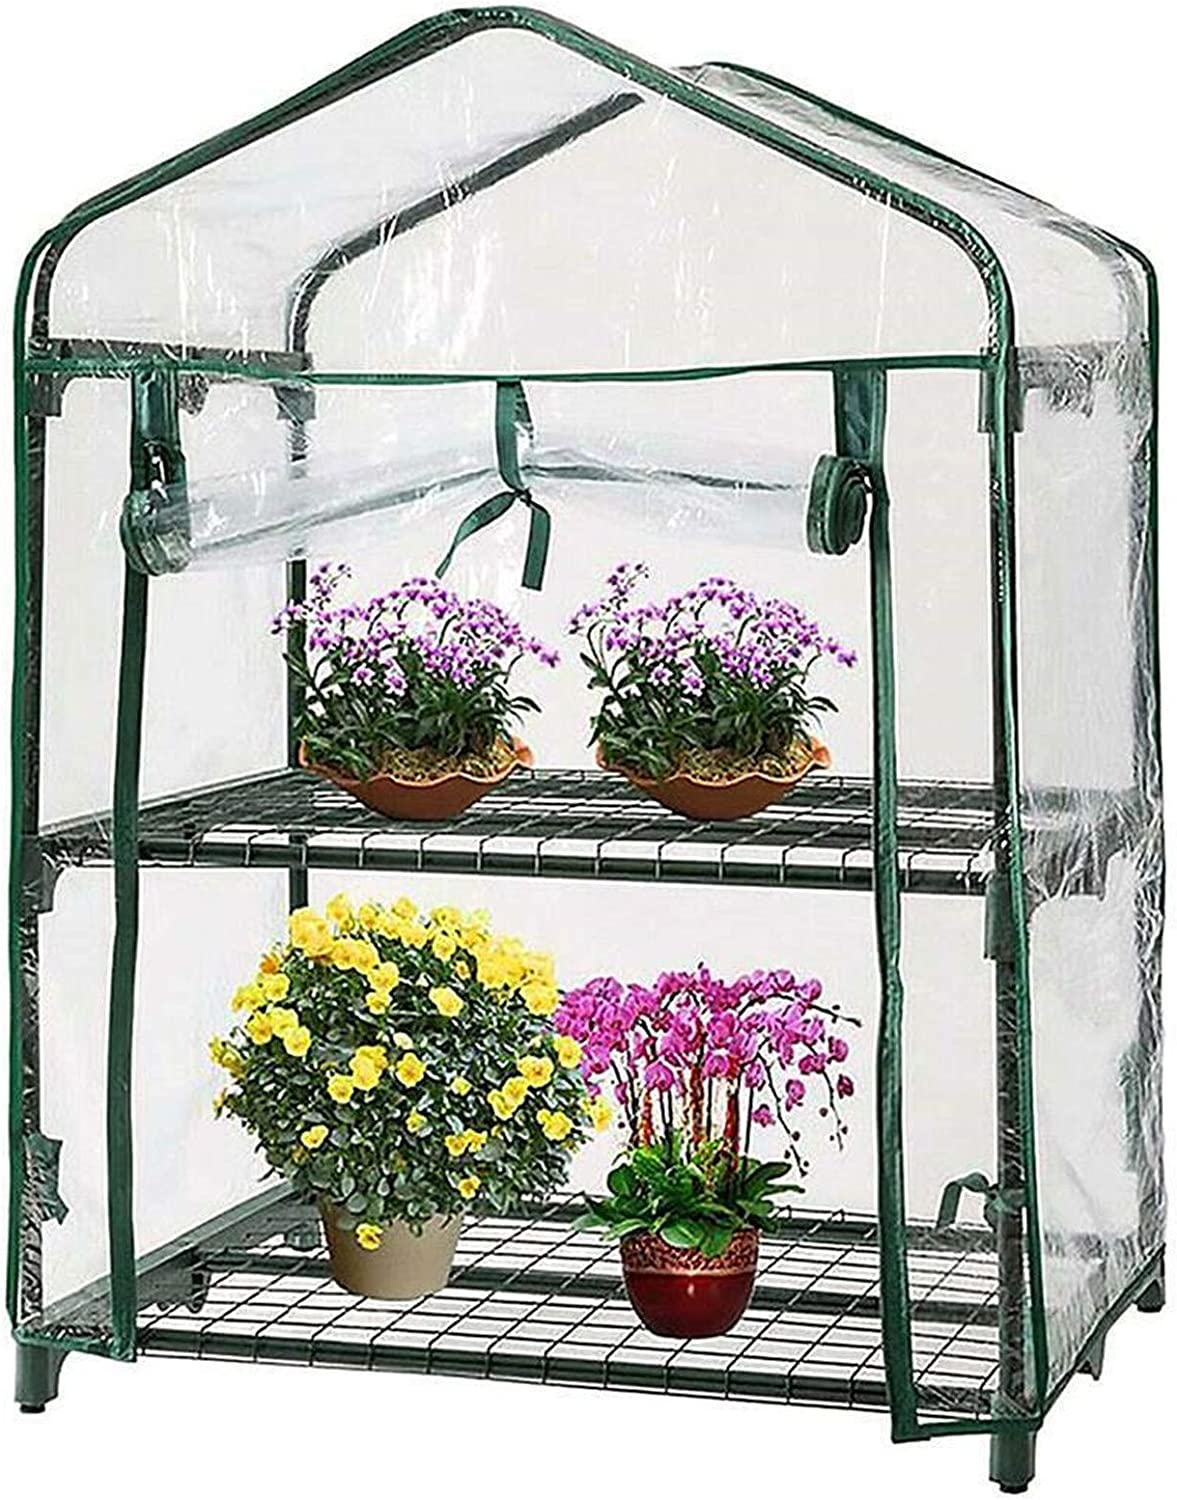 Clear Beauty products Greenhouse Cover Small Plant Philadelphia Mall Waterproof House Grow Outdo